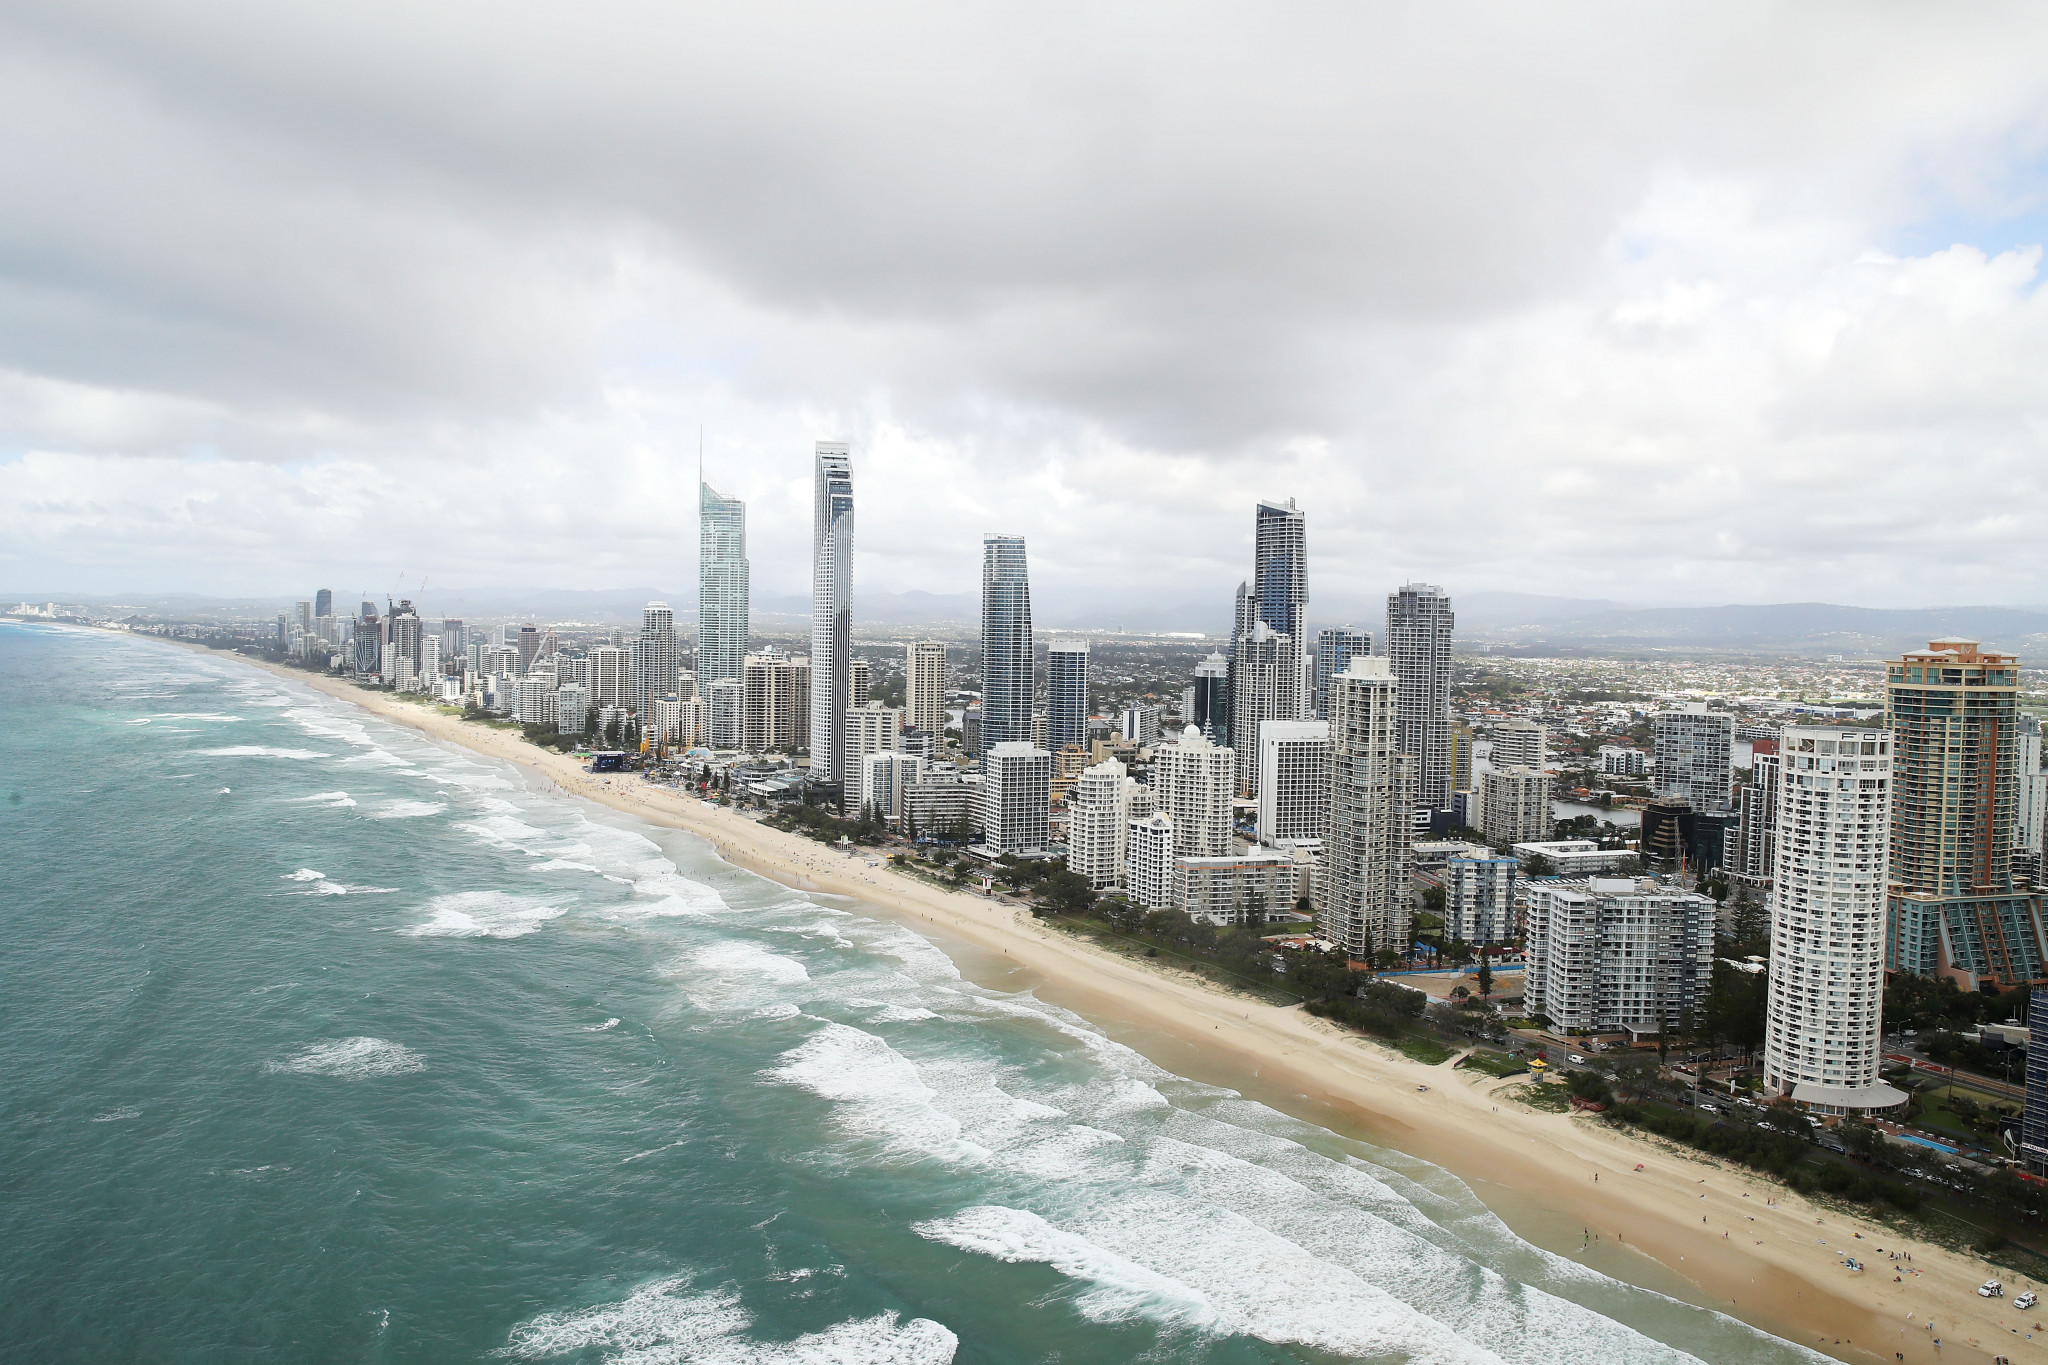 Events could be held in the Gold Coast after the city hosted the 2018 Commonwealth Games ©Getty Images